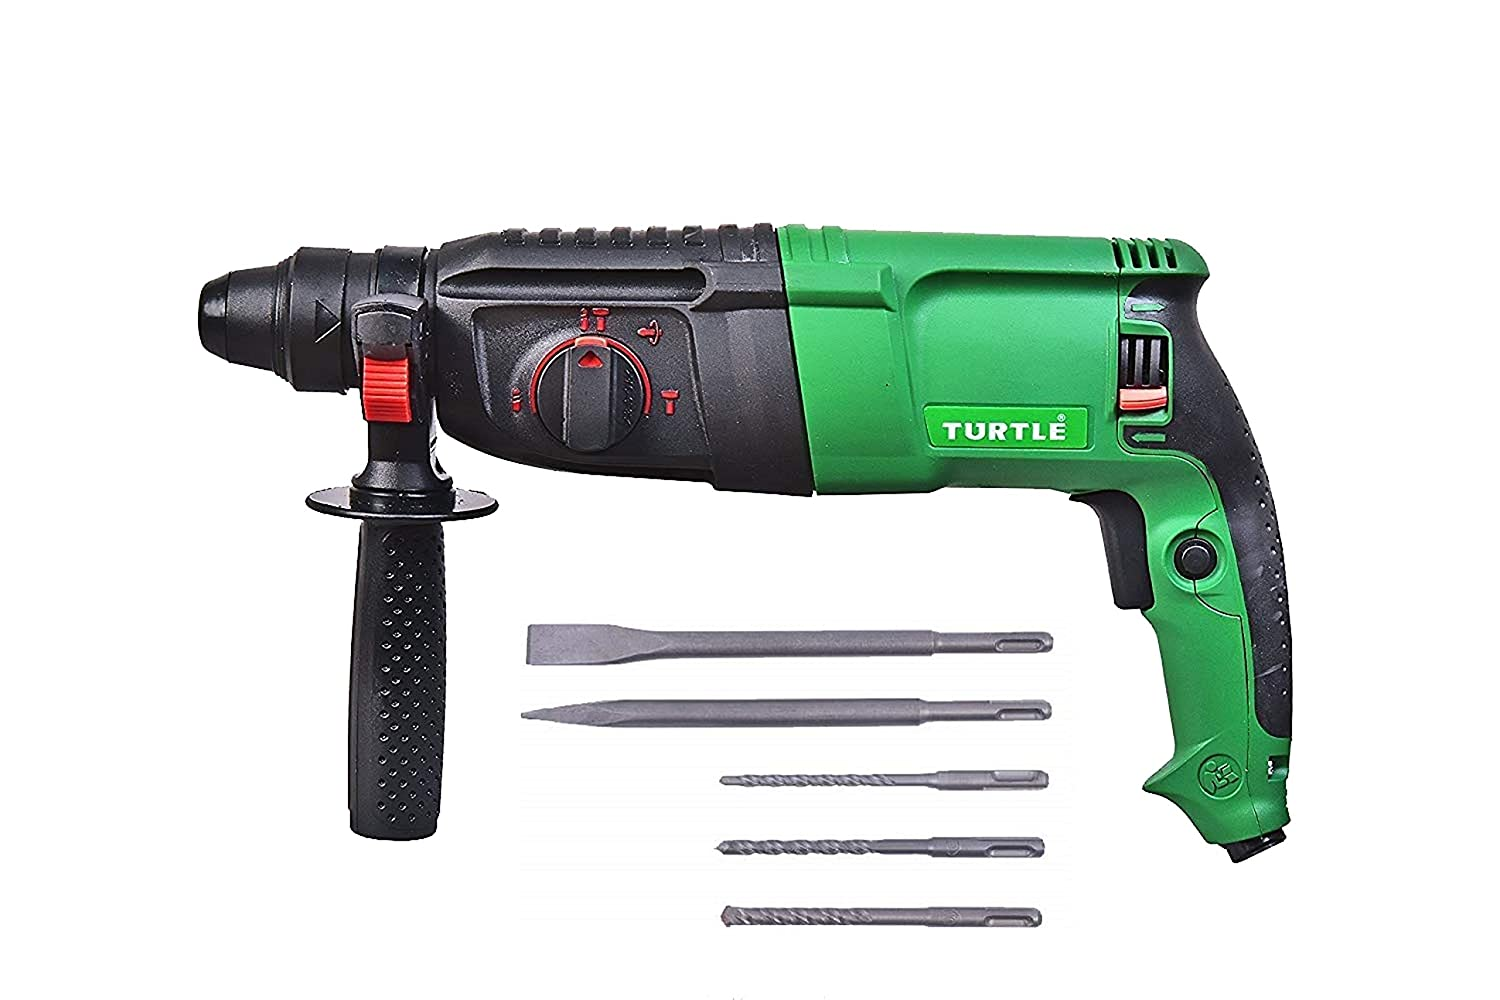 Tuf Turtle 26 Mm Heavy Duty Reversible Rotary Hammer With 5 Piece Drill Bit